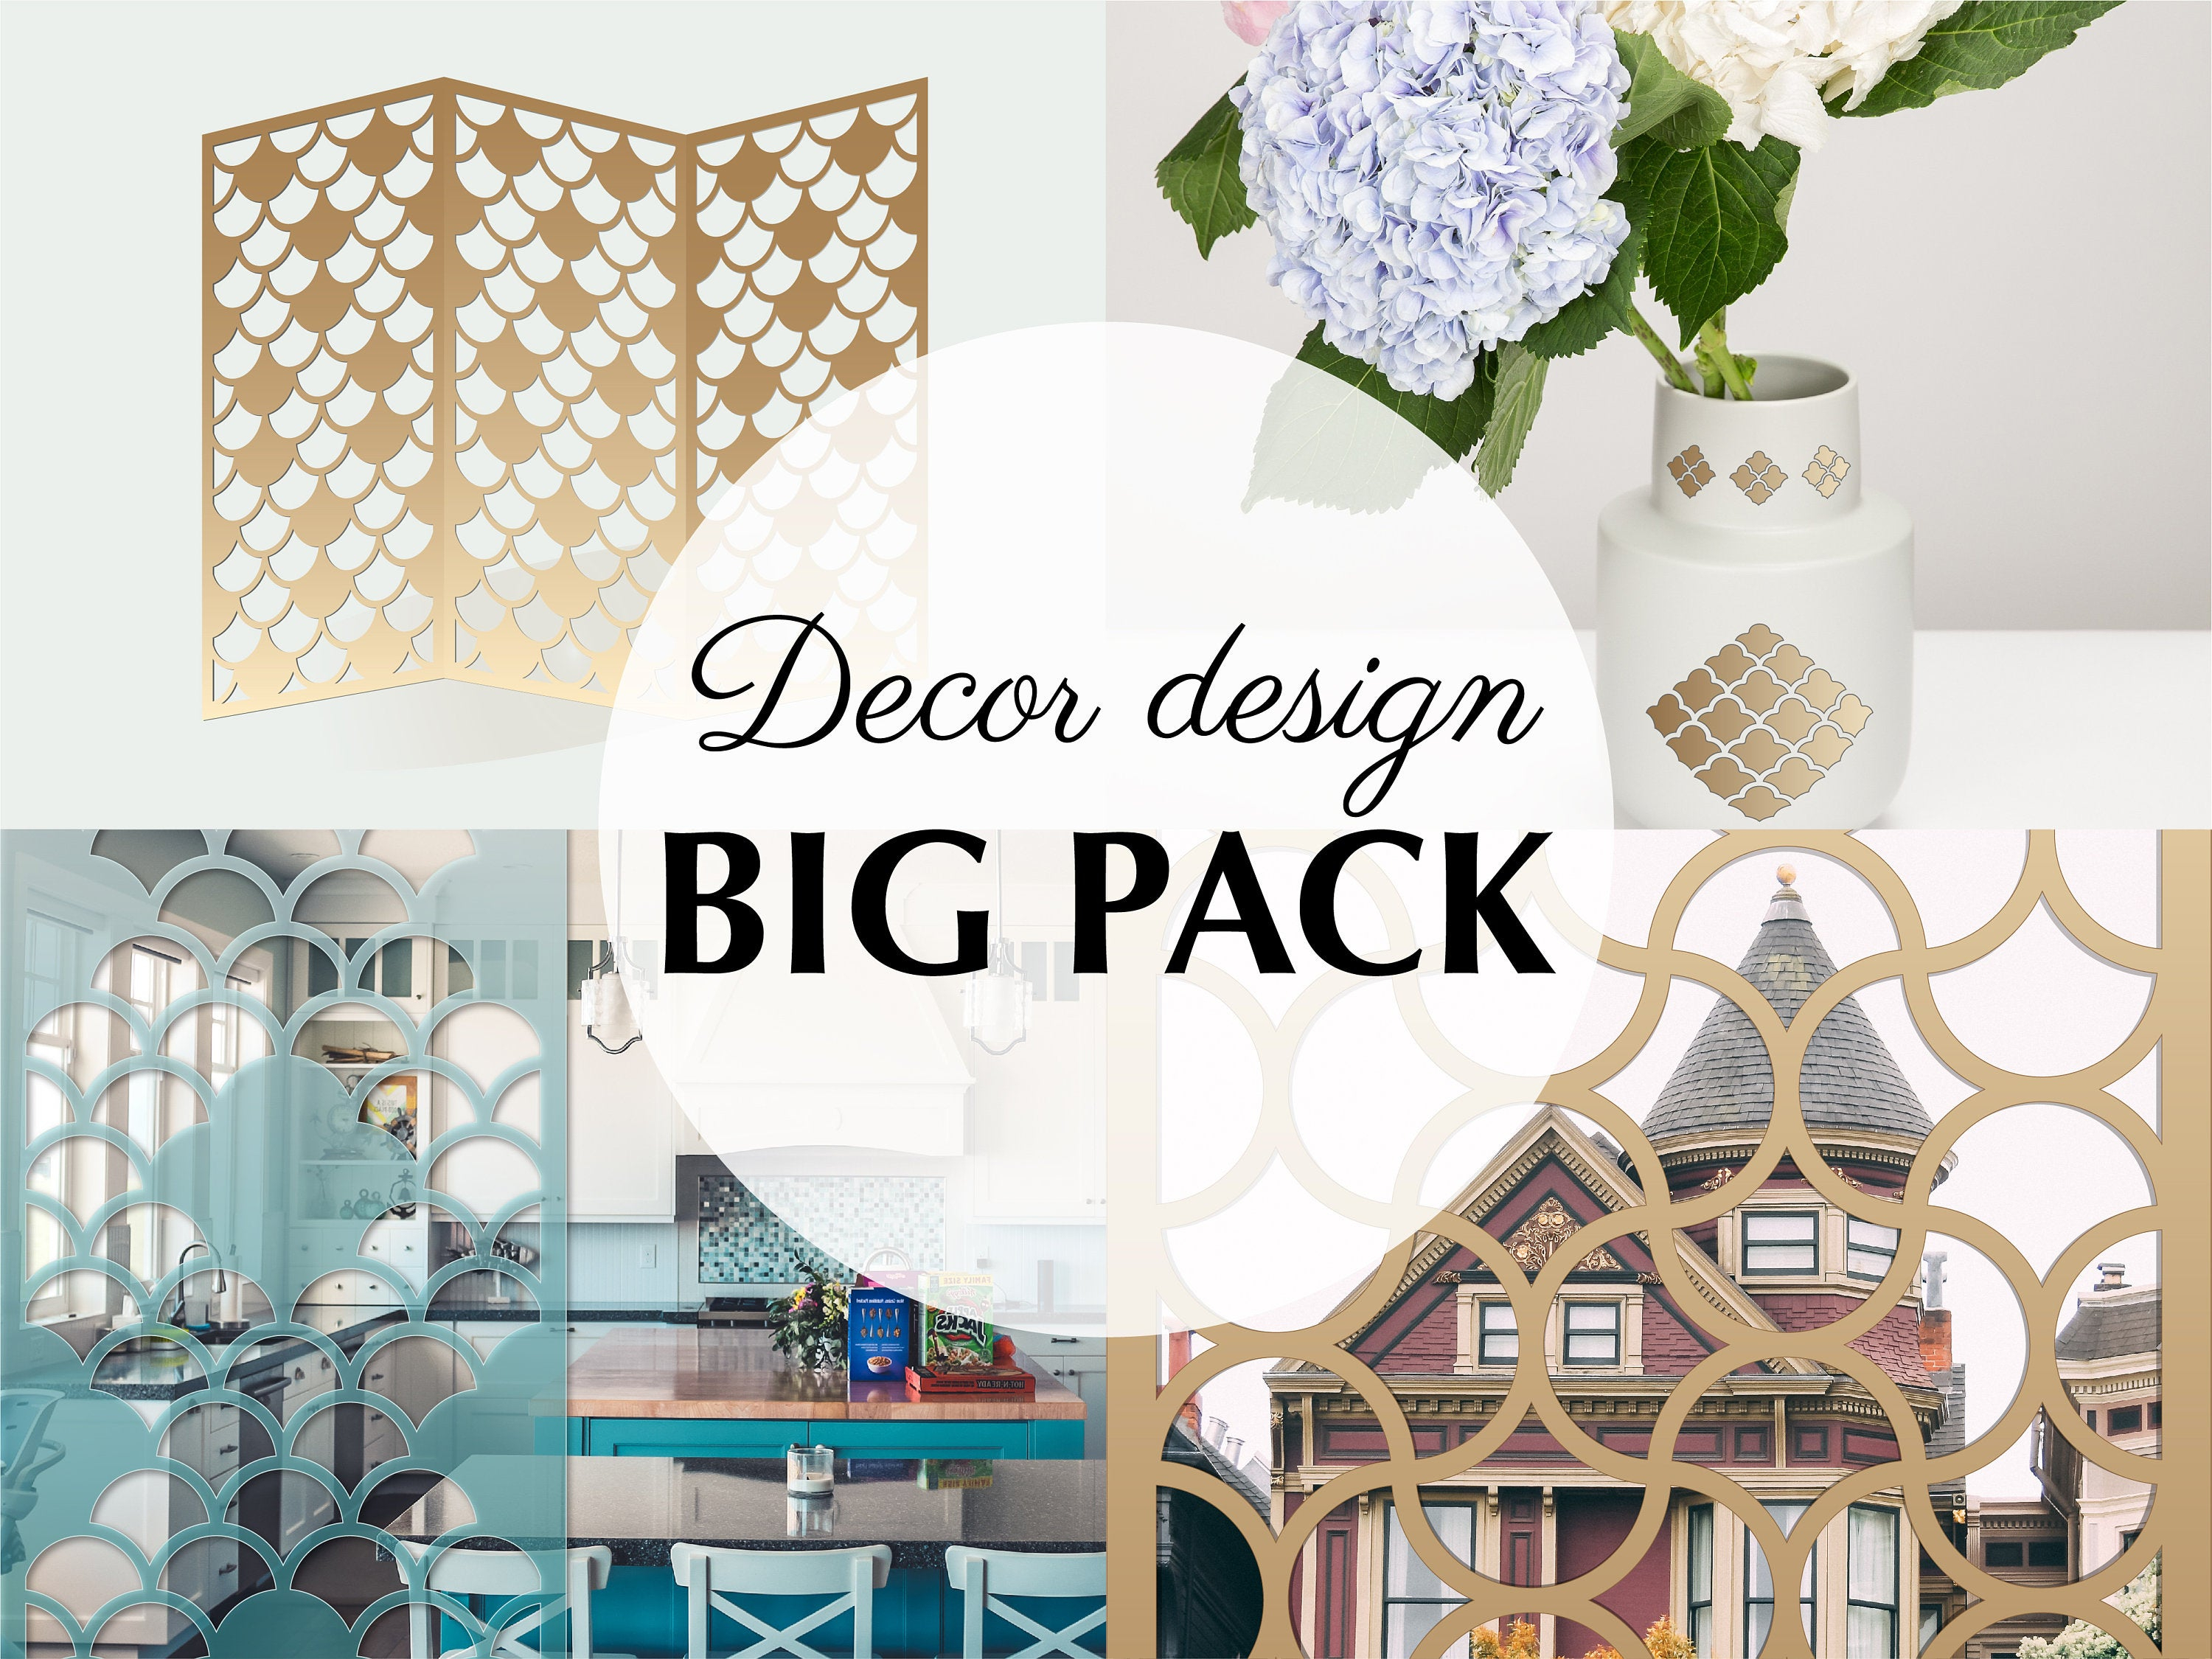 Room Divider Privacy Screen Door Decor Home Rustic Wall Decor Wedding  Patterns Wall Stencil Islamic Wall Art Laser Cut Svg Files For Cricut Pertaining To Floral Patterned Over The Door Wall Decor (Gallery 9 of 30)